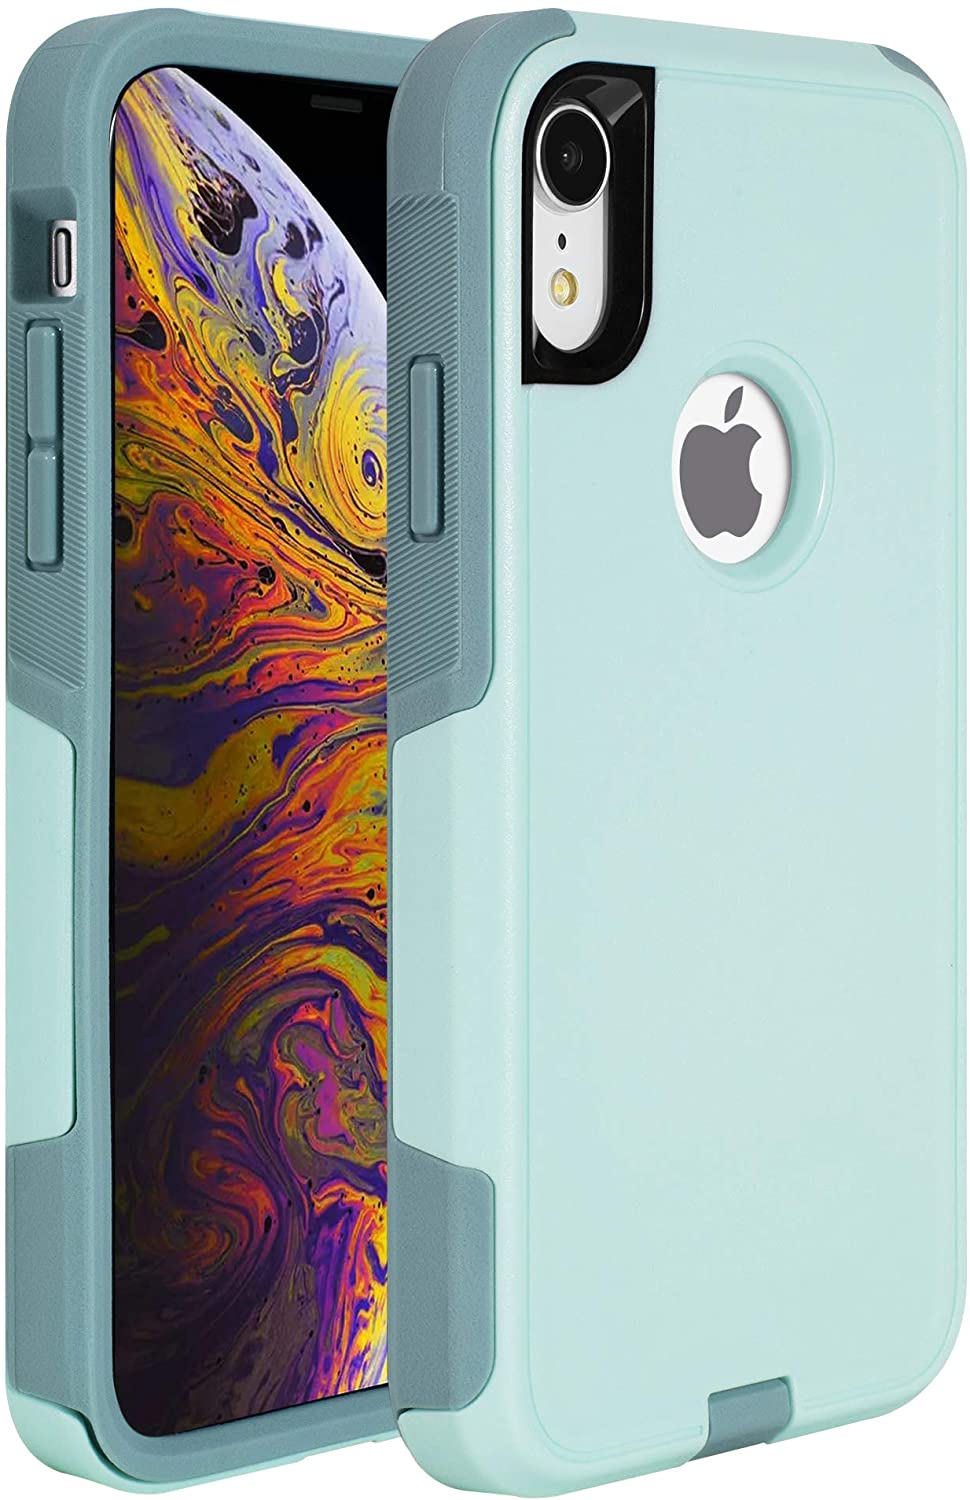 Legfes Commuter Phone Protective Case, Commuter iPhone XR Case, Anti-Drop Shock Absorption iPhone XR Case, Heavy Duty Dual Layer Protection Cover Case for iPhone XR (Aqua SAIL/Aquifer)